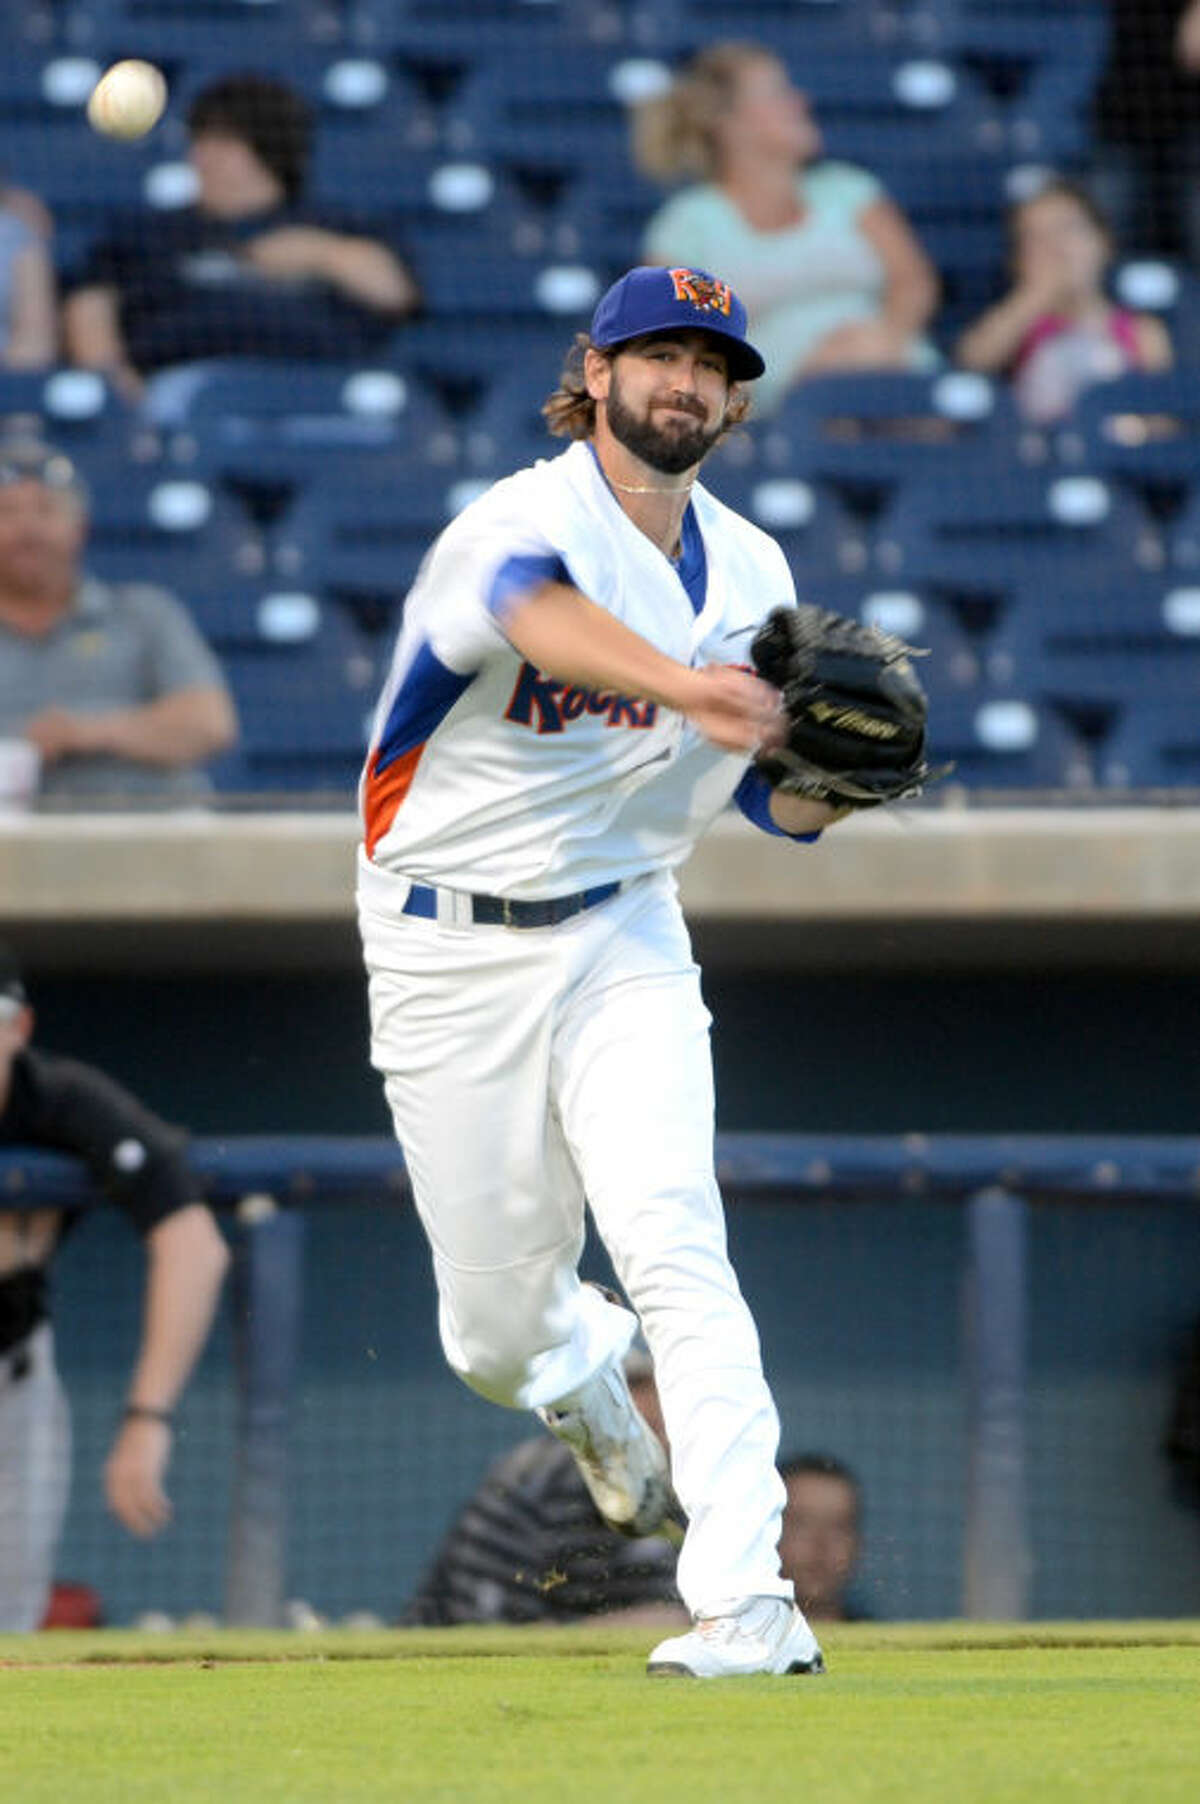 Rockhounds pitcher Drew Granier throws to first base during the game against San Antonio Missions last August at Citibank Ballpark. James Durbin/Reporter-Telegram